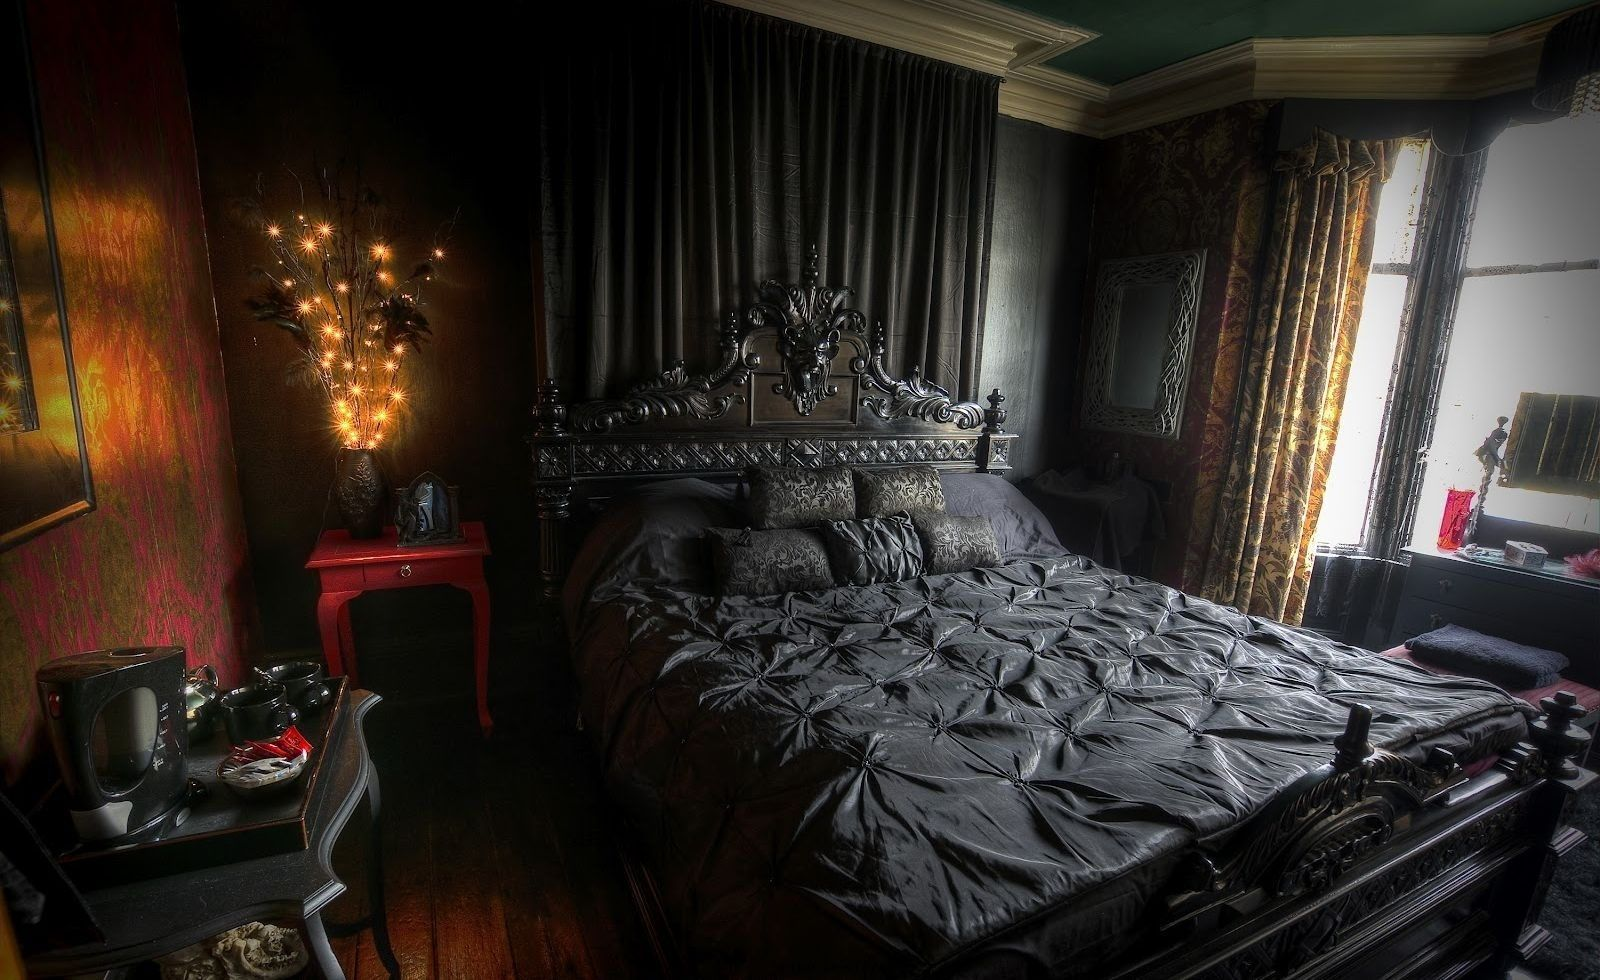 Medieval Castle Bed  Google 検索  ベッド  Pinterest  Gothic Adorable Gothic Bedroom Furniture Review